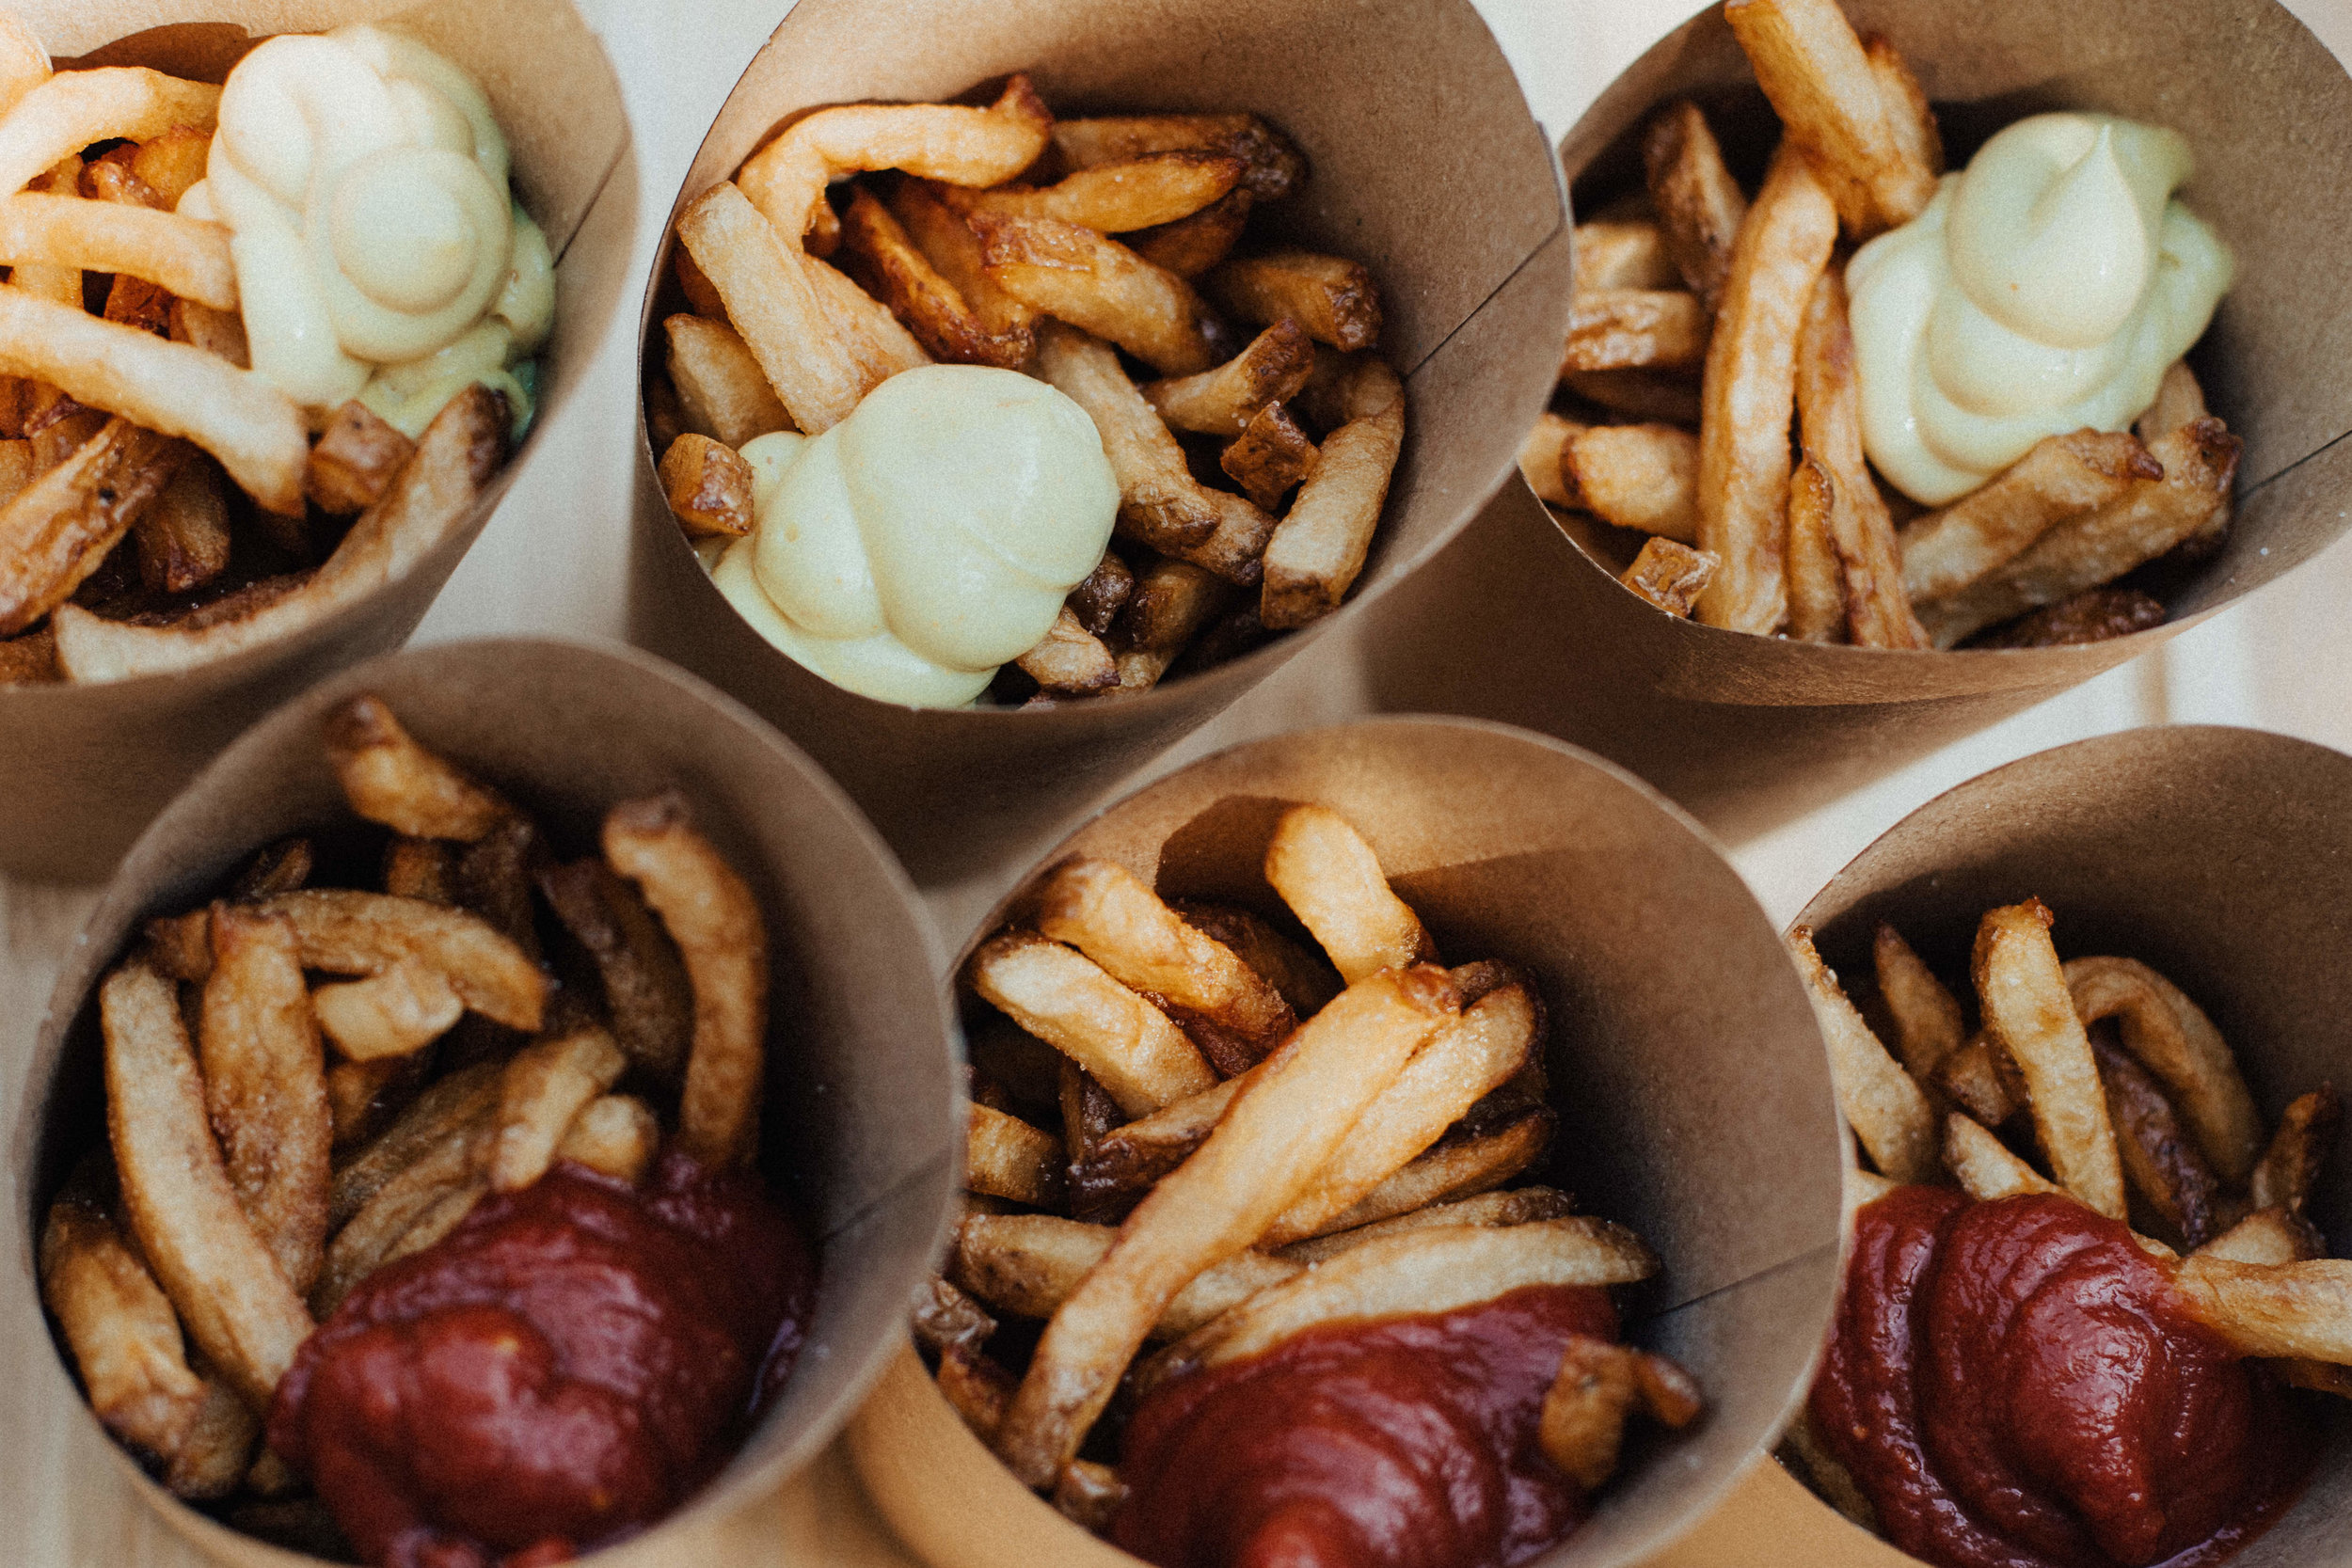 You don't have to give up french fries on the AIP diet